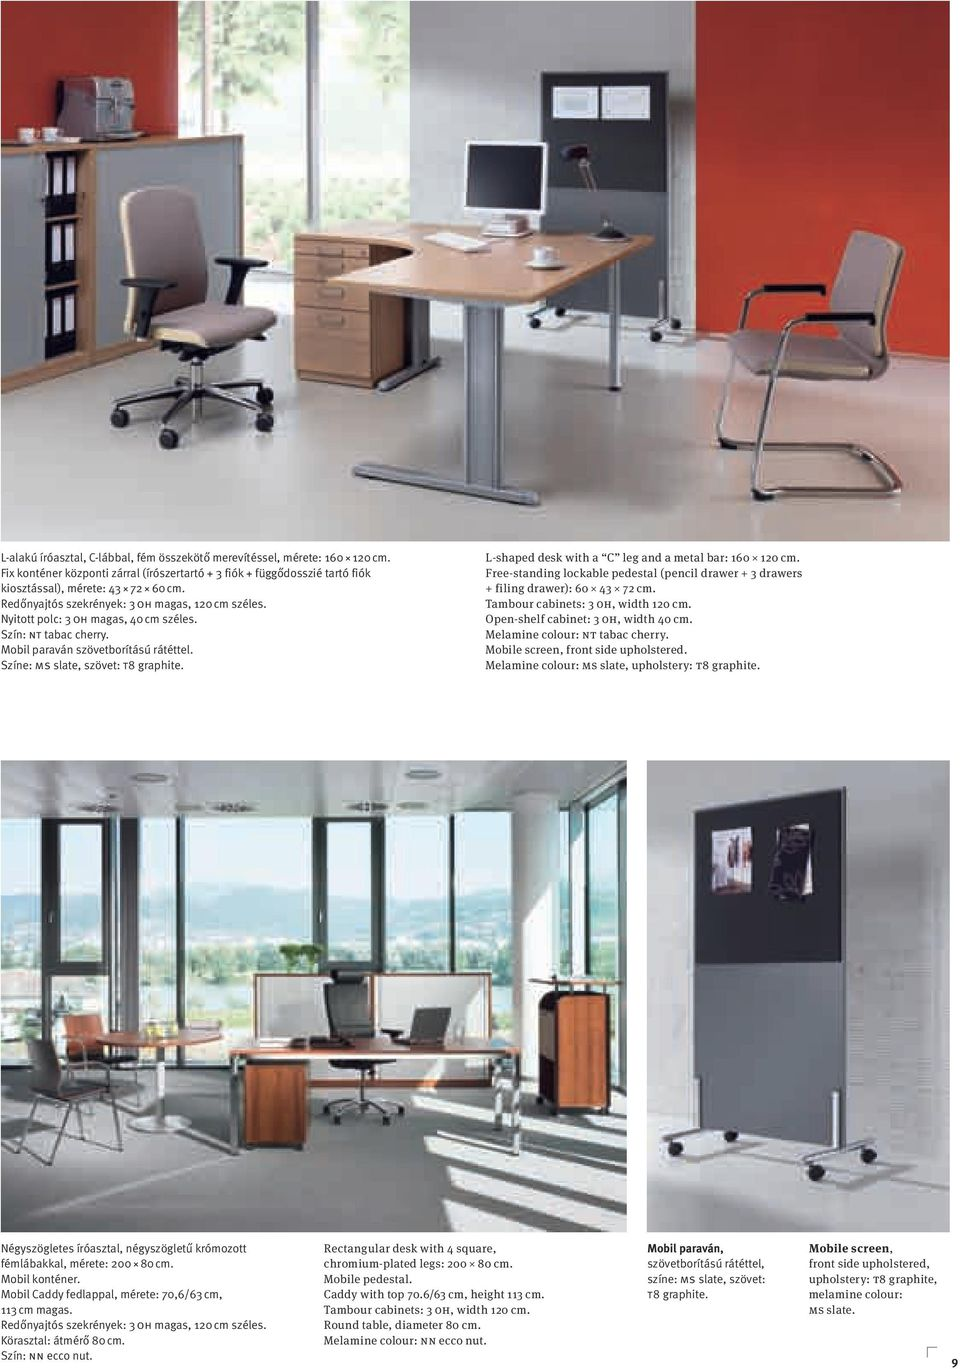 L-shaped desk with a C leg and a metal bar: 1 120 cm. Free-standing lockable pedestal (pencil drawer + 3 drawers + filing drawer): 43 72 cm. Tambour cabinets: 3 OH, width 120 cm.